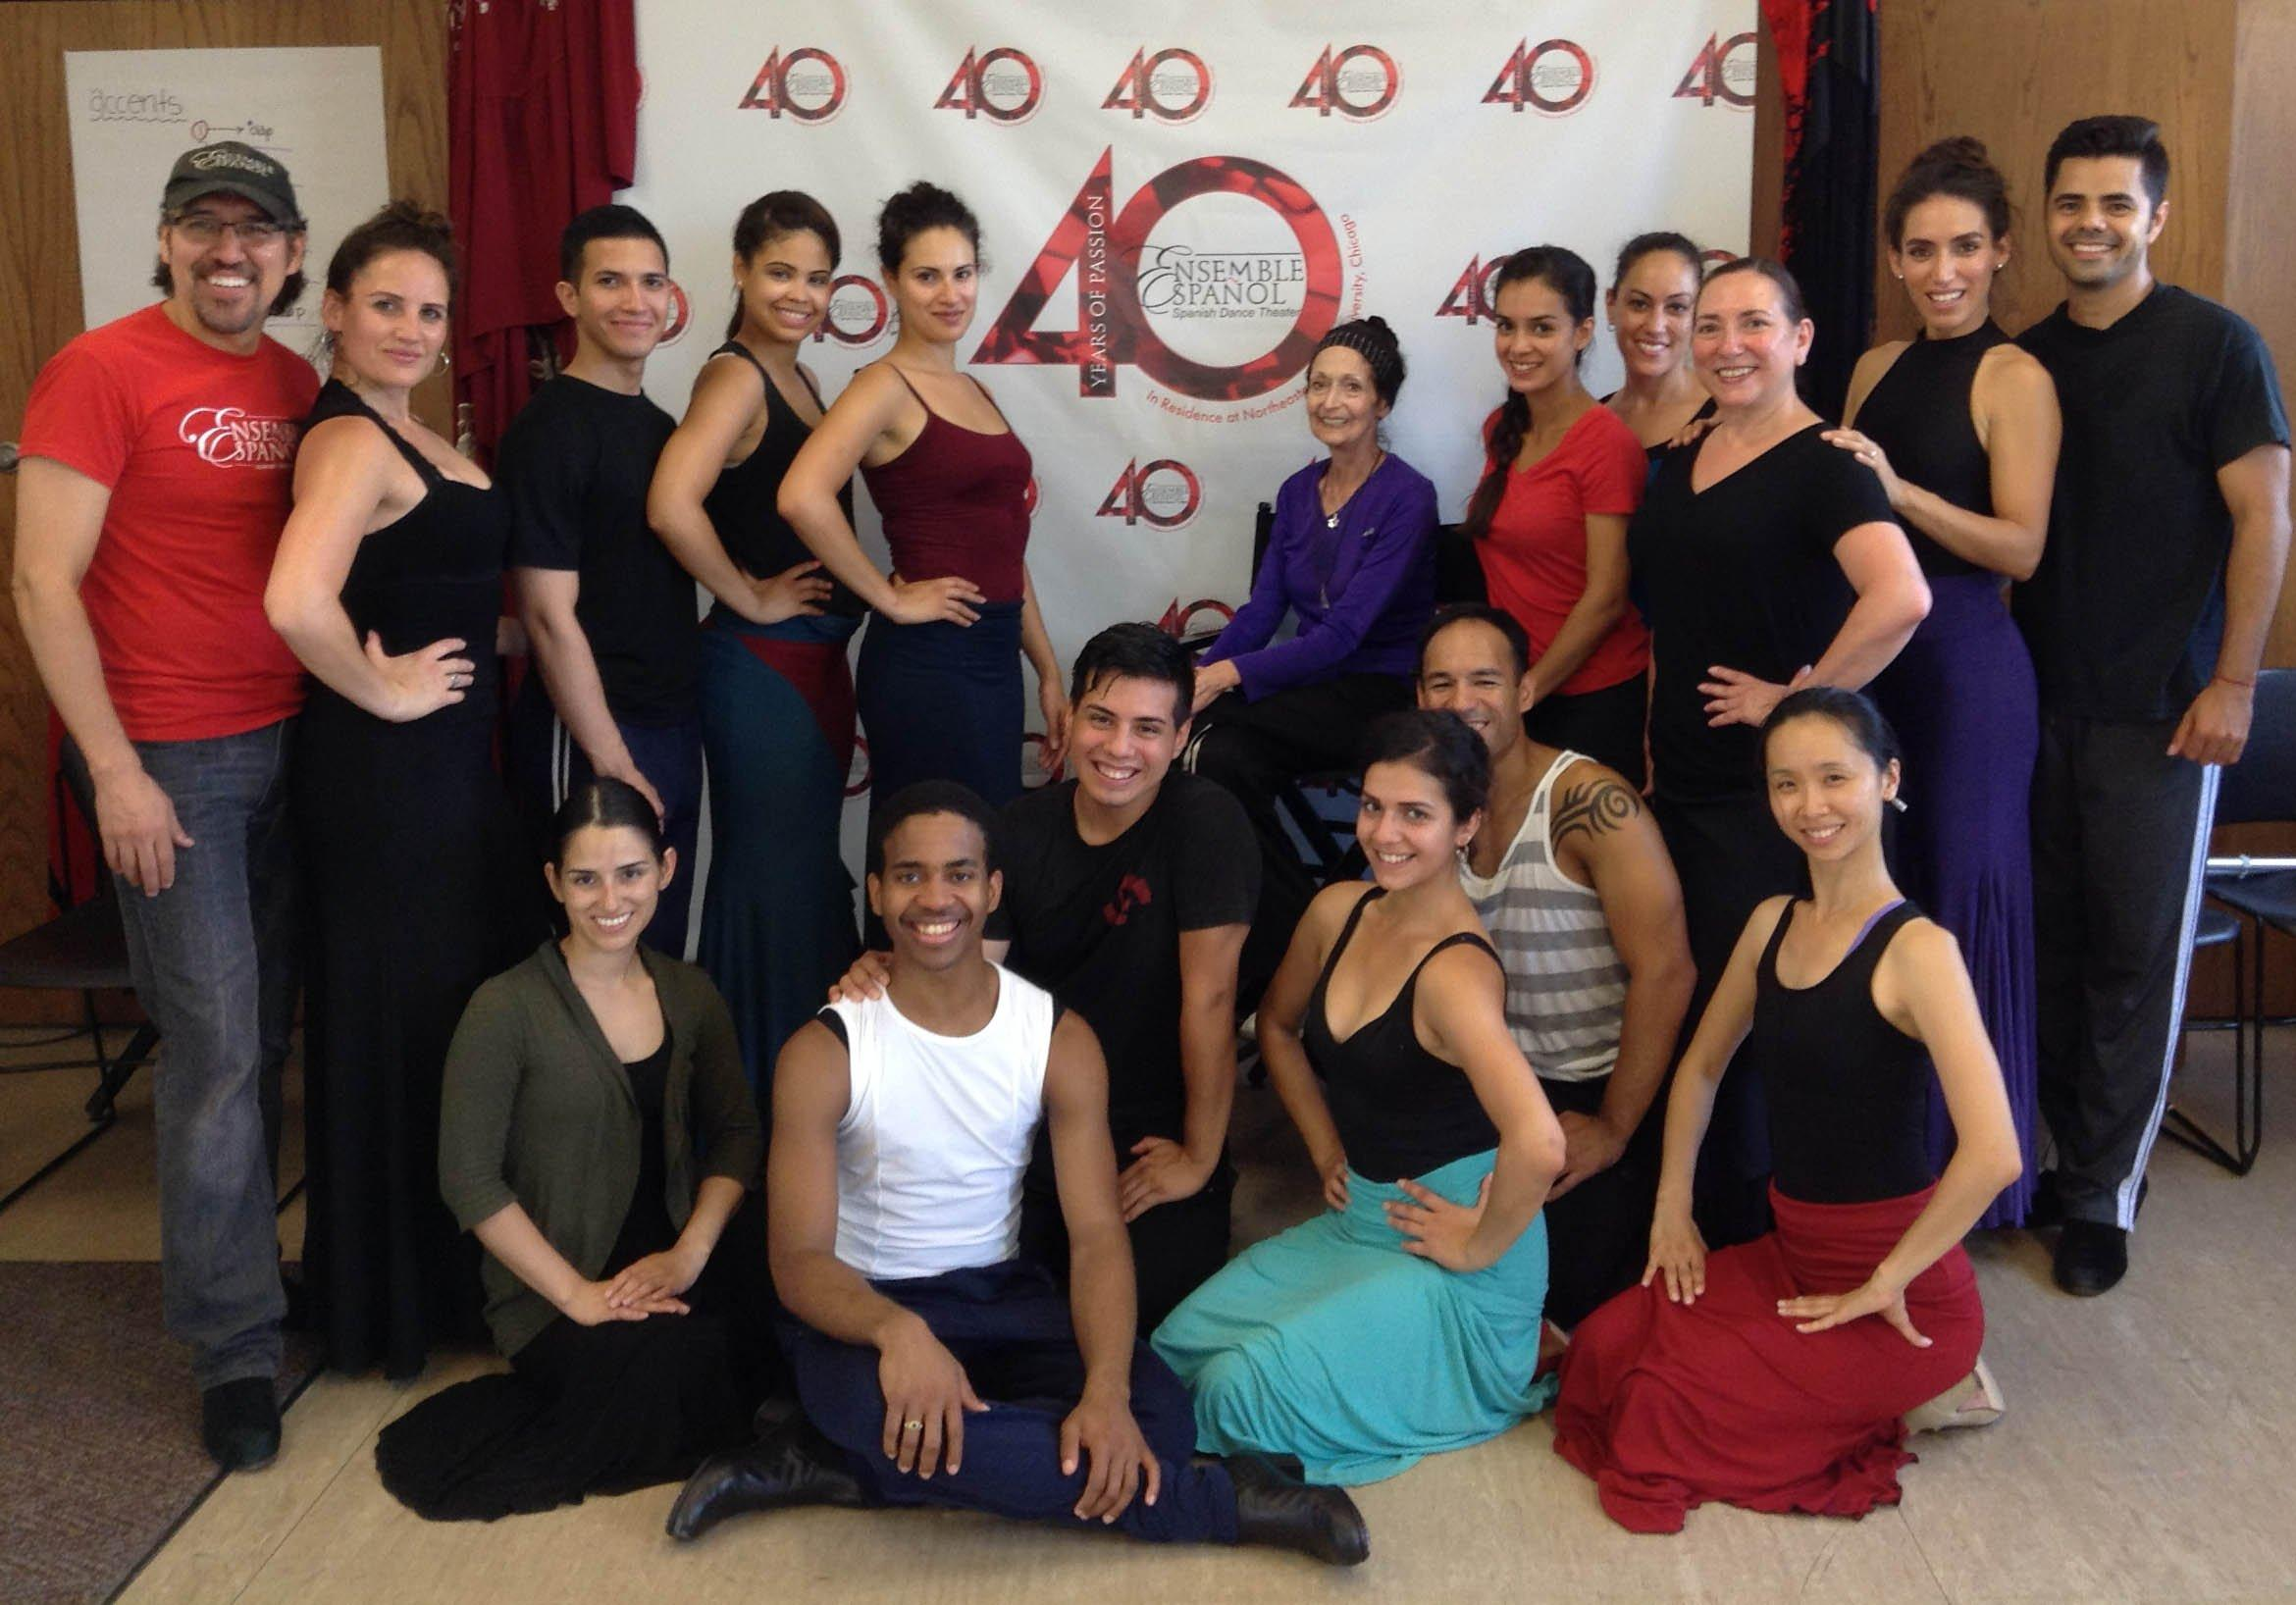 The dance company prepares for their fortieth season.